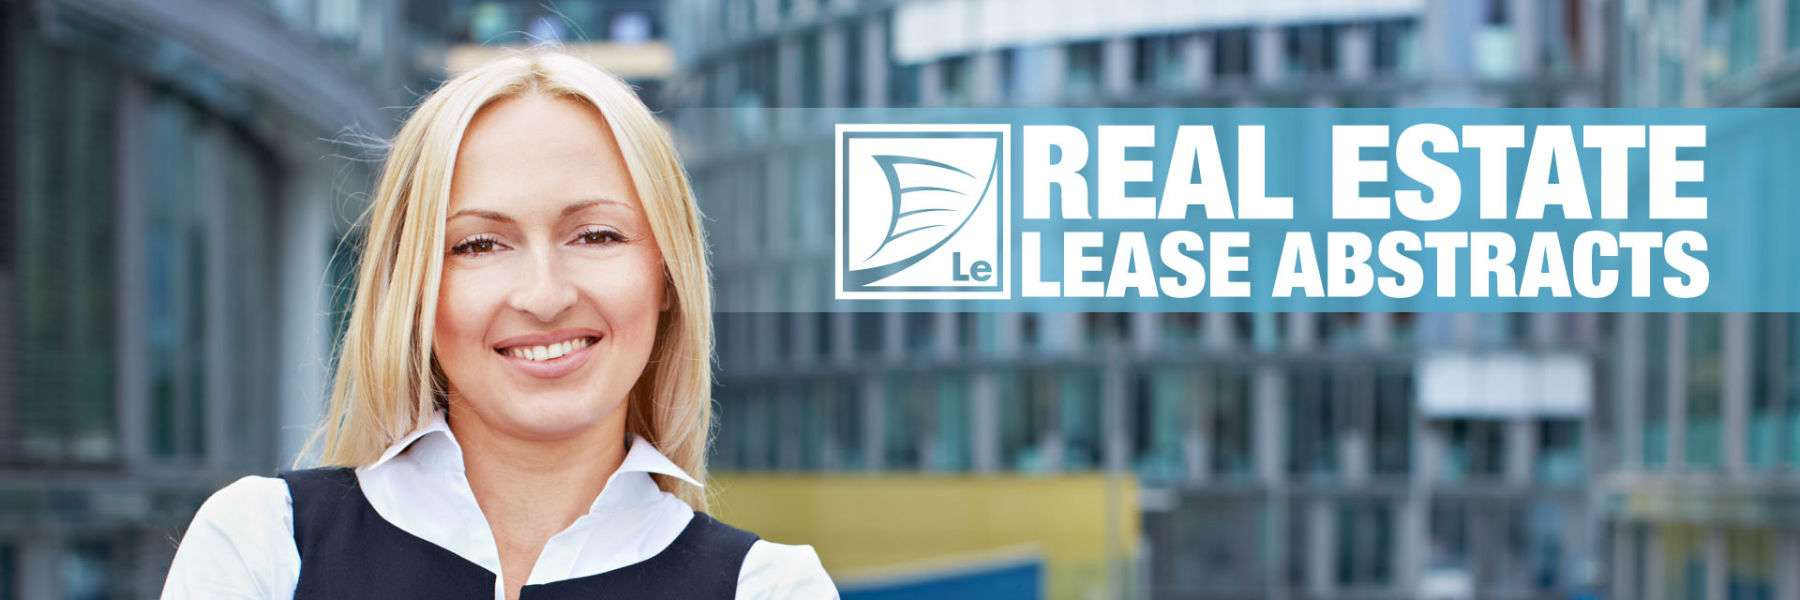 lease-abstracts-real-estate-due-diligence_3